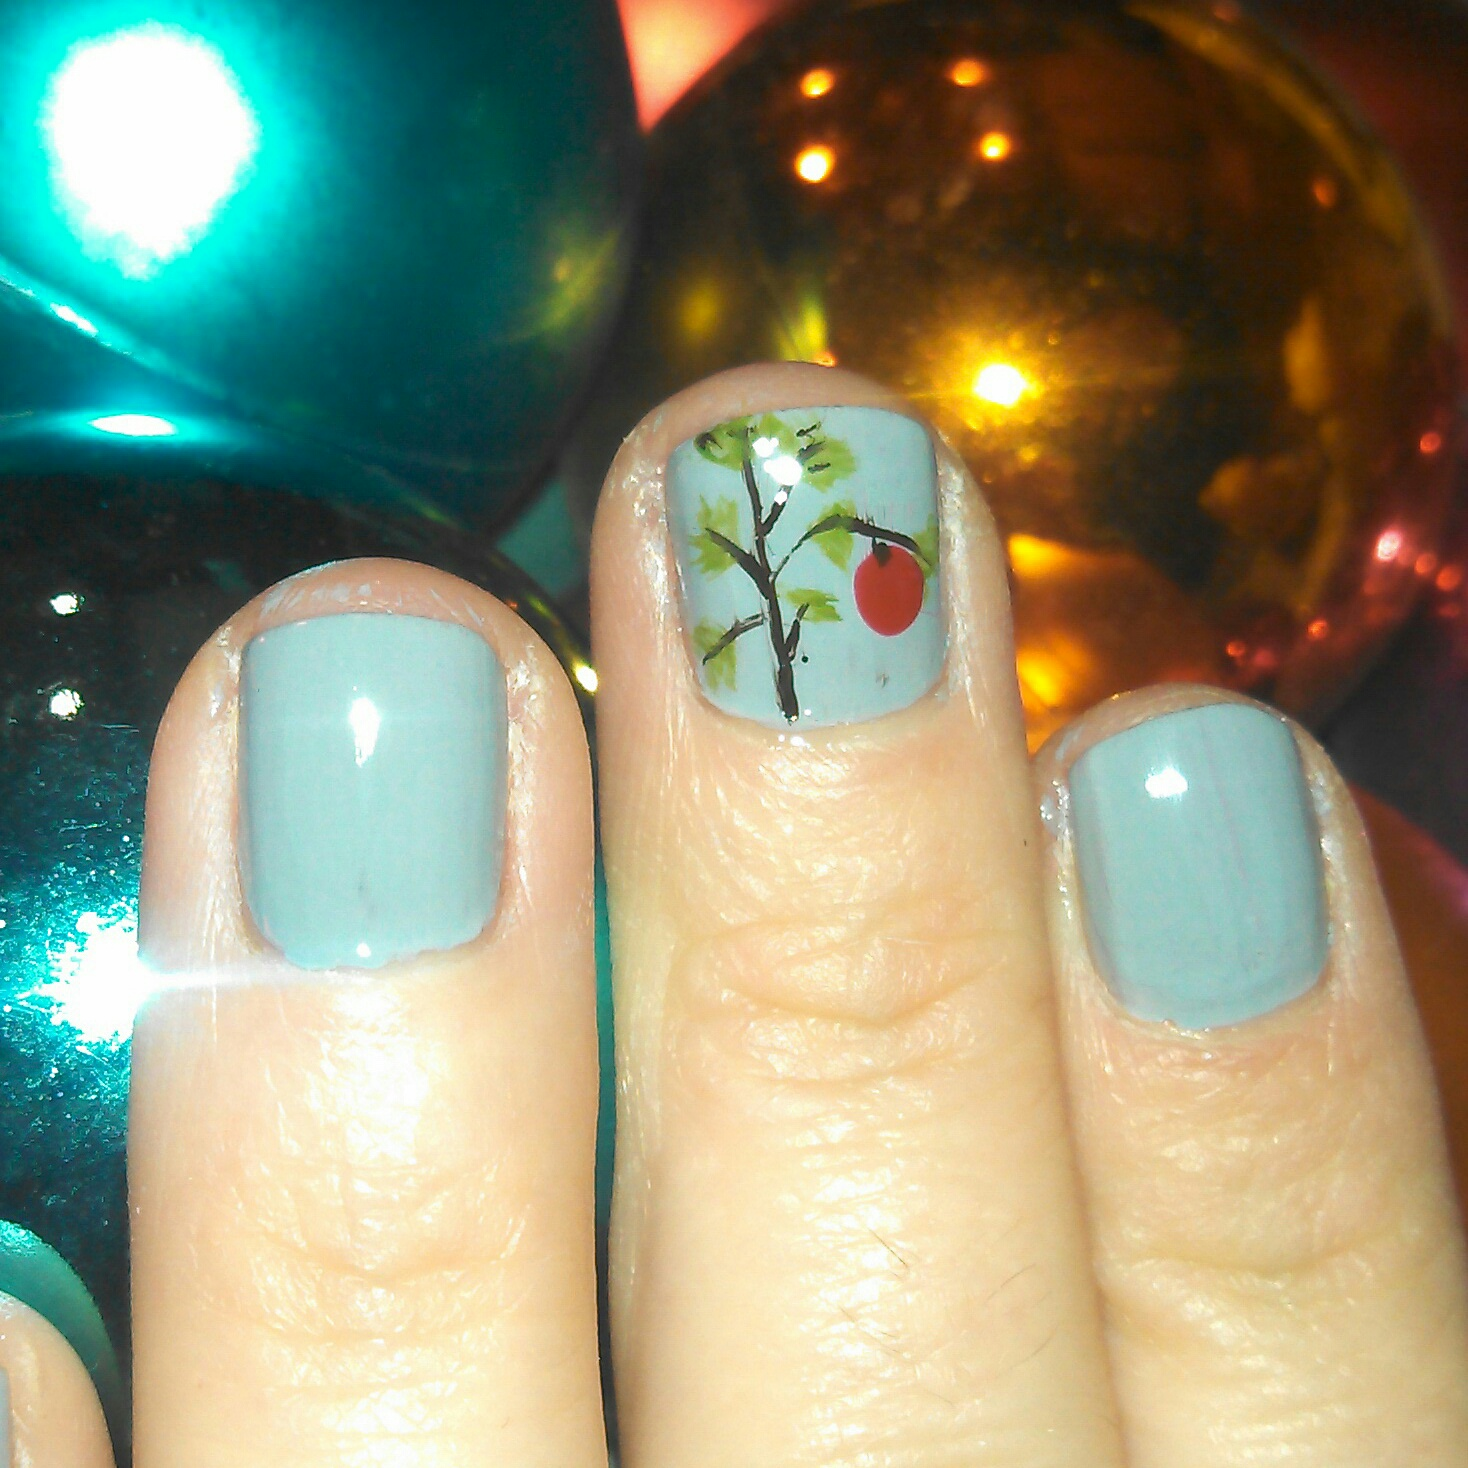 Iceomatics nails charlie brown christmas tree tuesday december 4 2012 prinsesfo Gallery